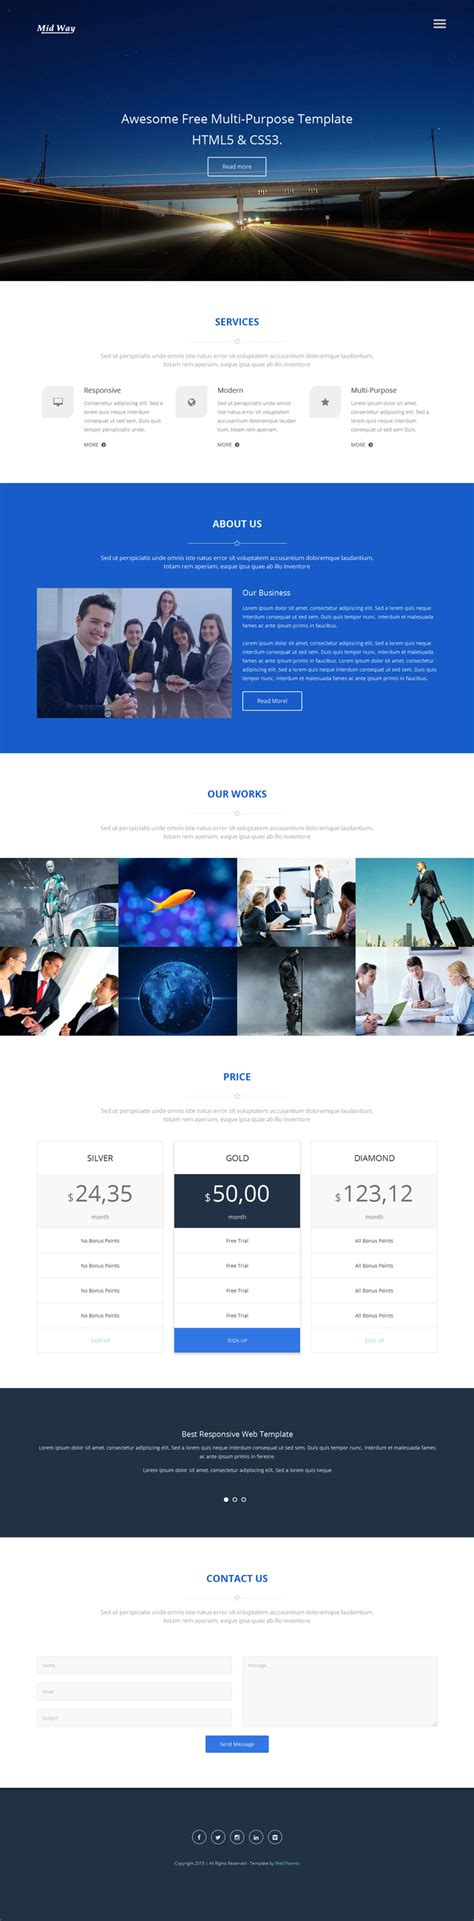 free website templates html5 10 best free website html5 templates february 2015